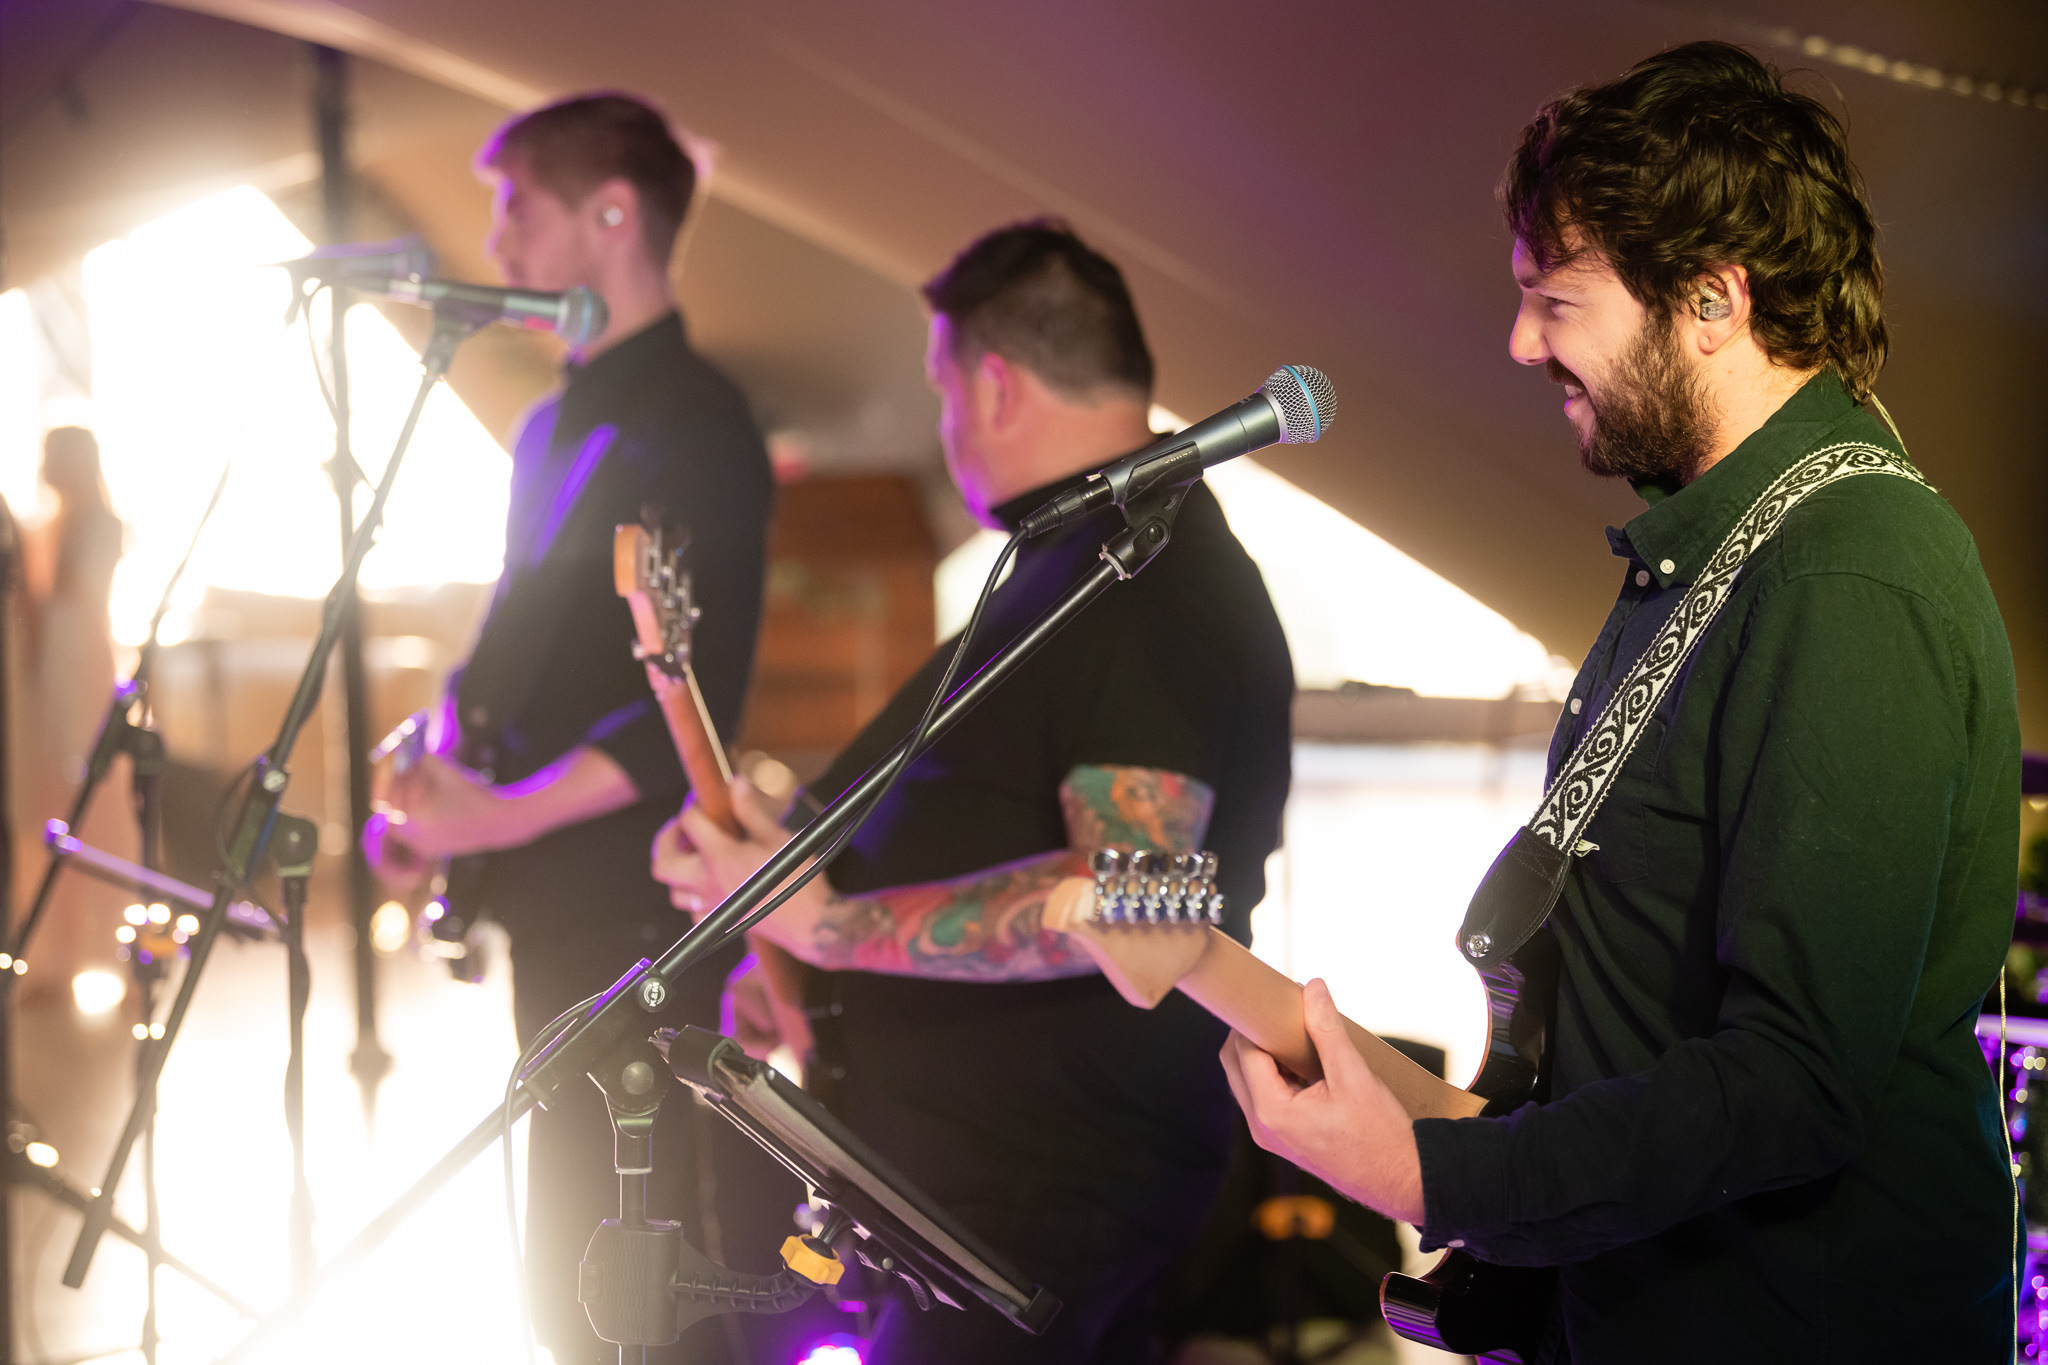 The band performing in the stretched tent